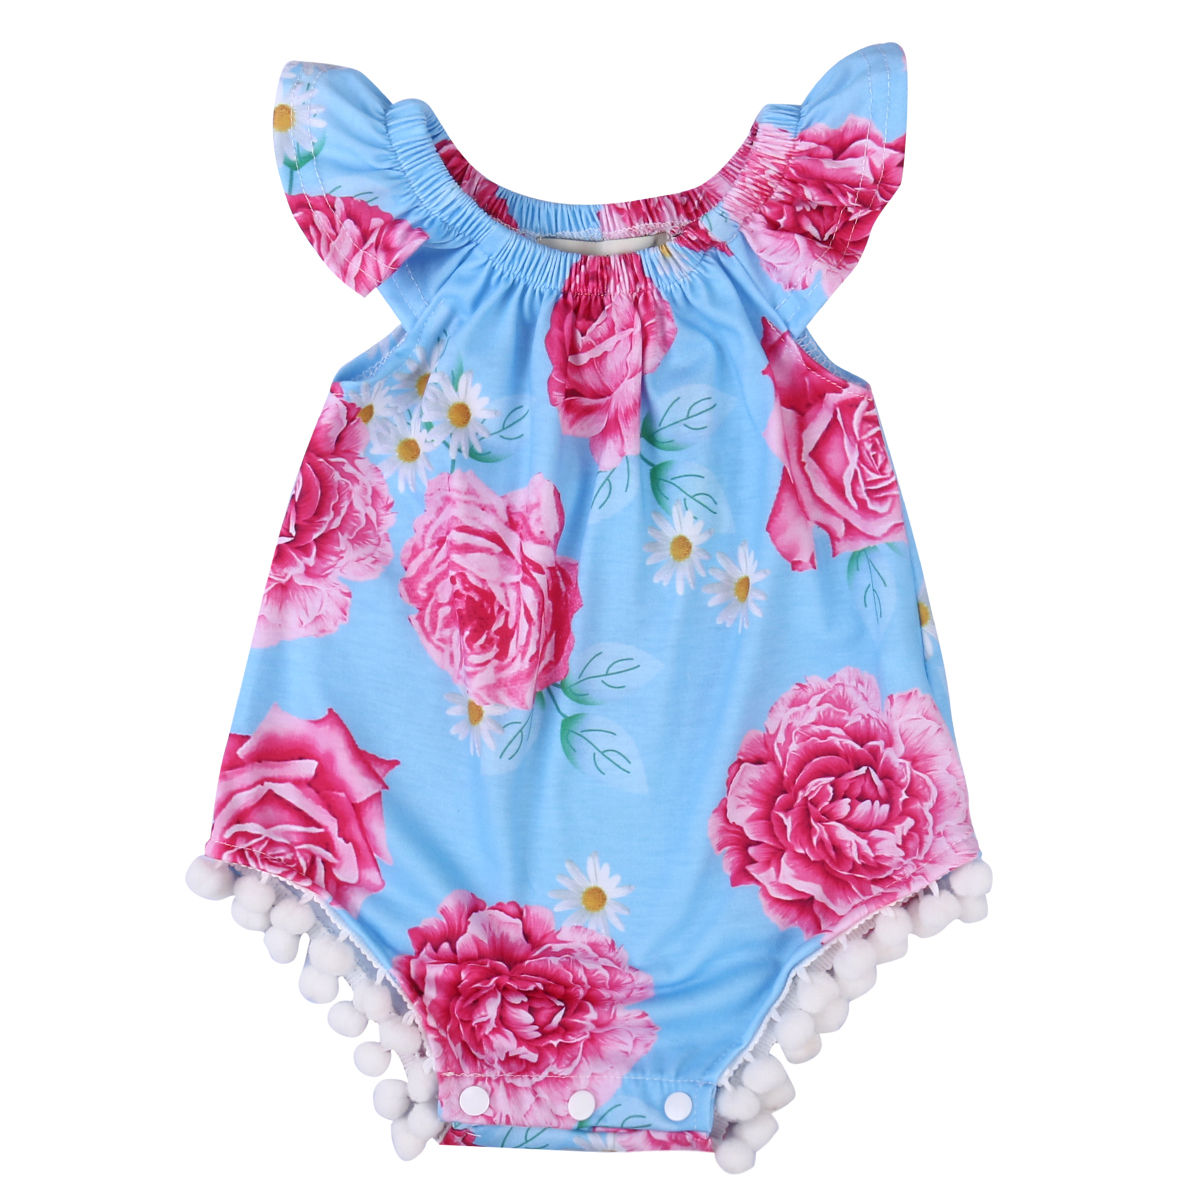 Lovely Newborn Baby Girl Clothes Floral Romper 2017 Summer Sleeveless Infant Bebes Toddler Kids Jumpsuit Outfit Sunsuit 0-24M 2017 floral baby romper newborn baby girl clothes ruffles sleeve bodysuit headband 2pcs outfit bebek giyim sunsuit 0 24m